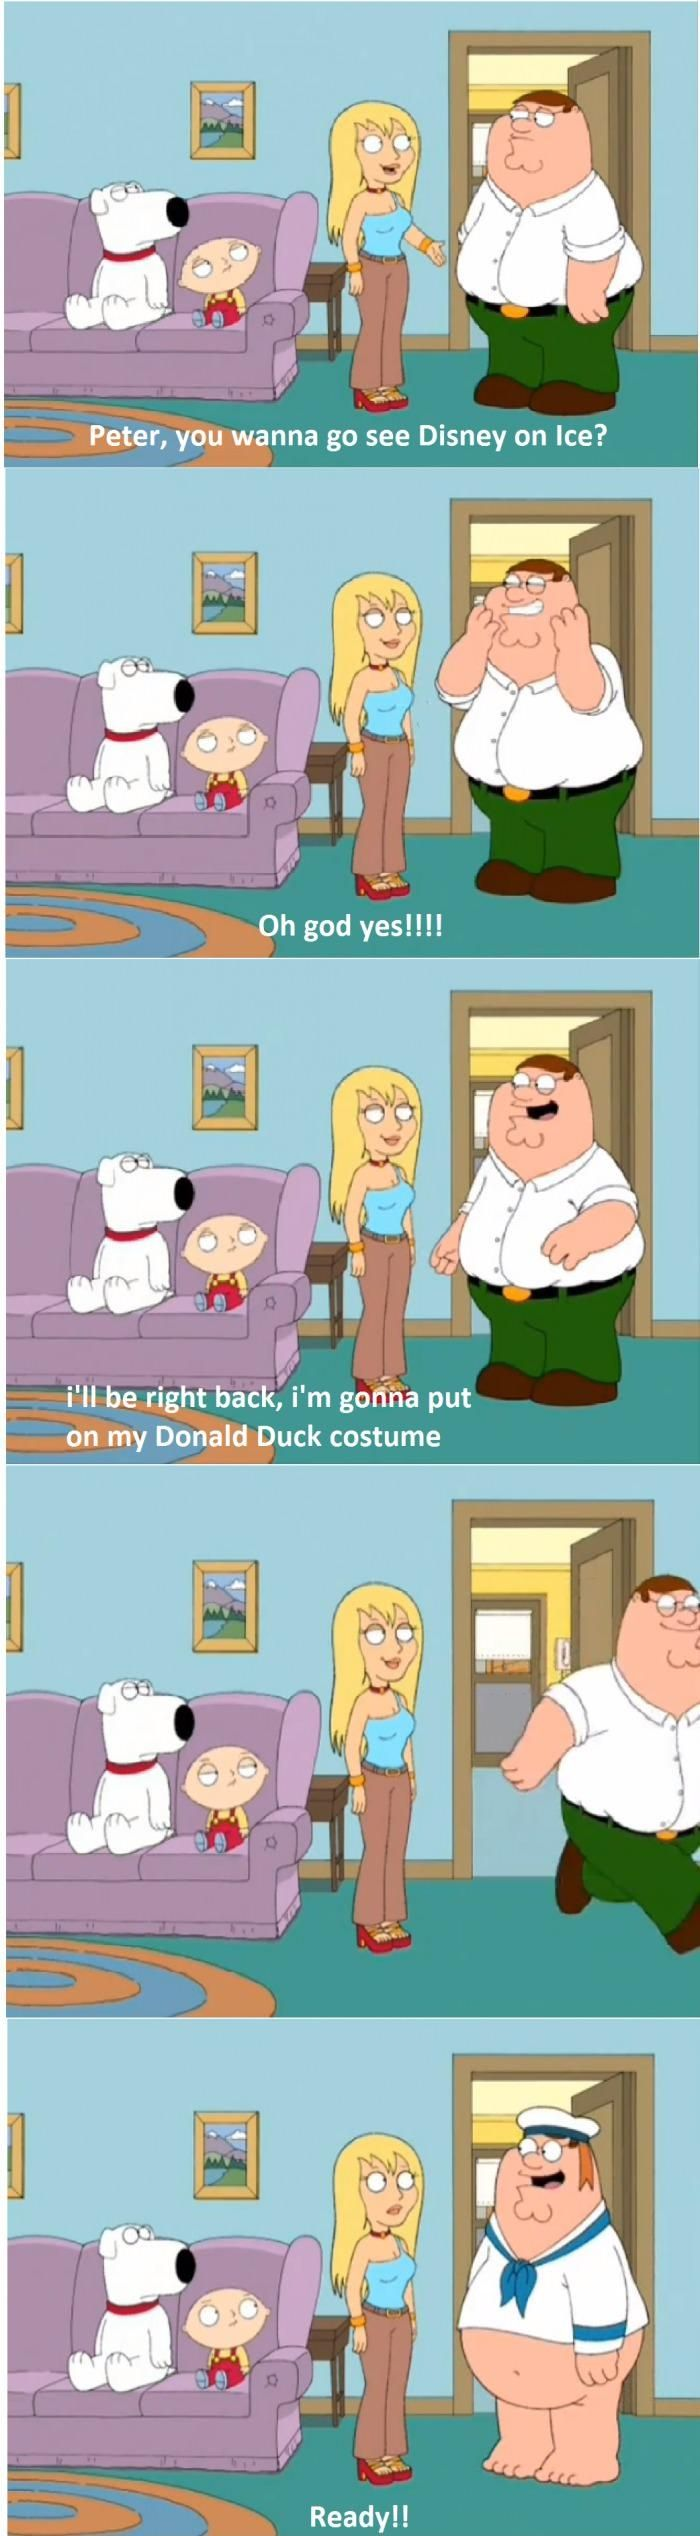 family guy funny peter stewie brian donald duck That s scarily accurate